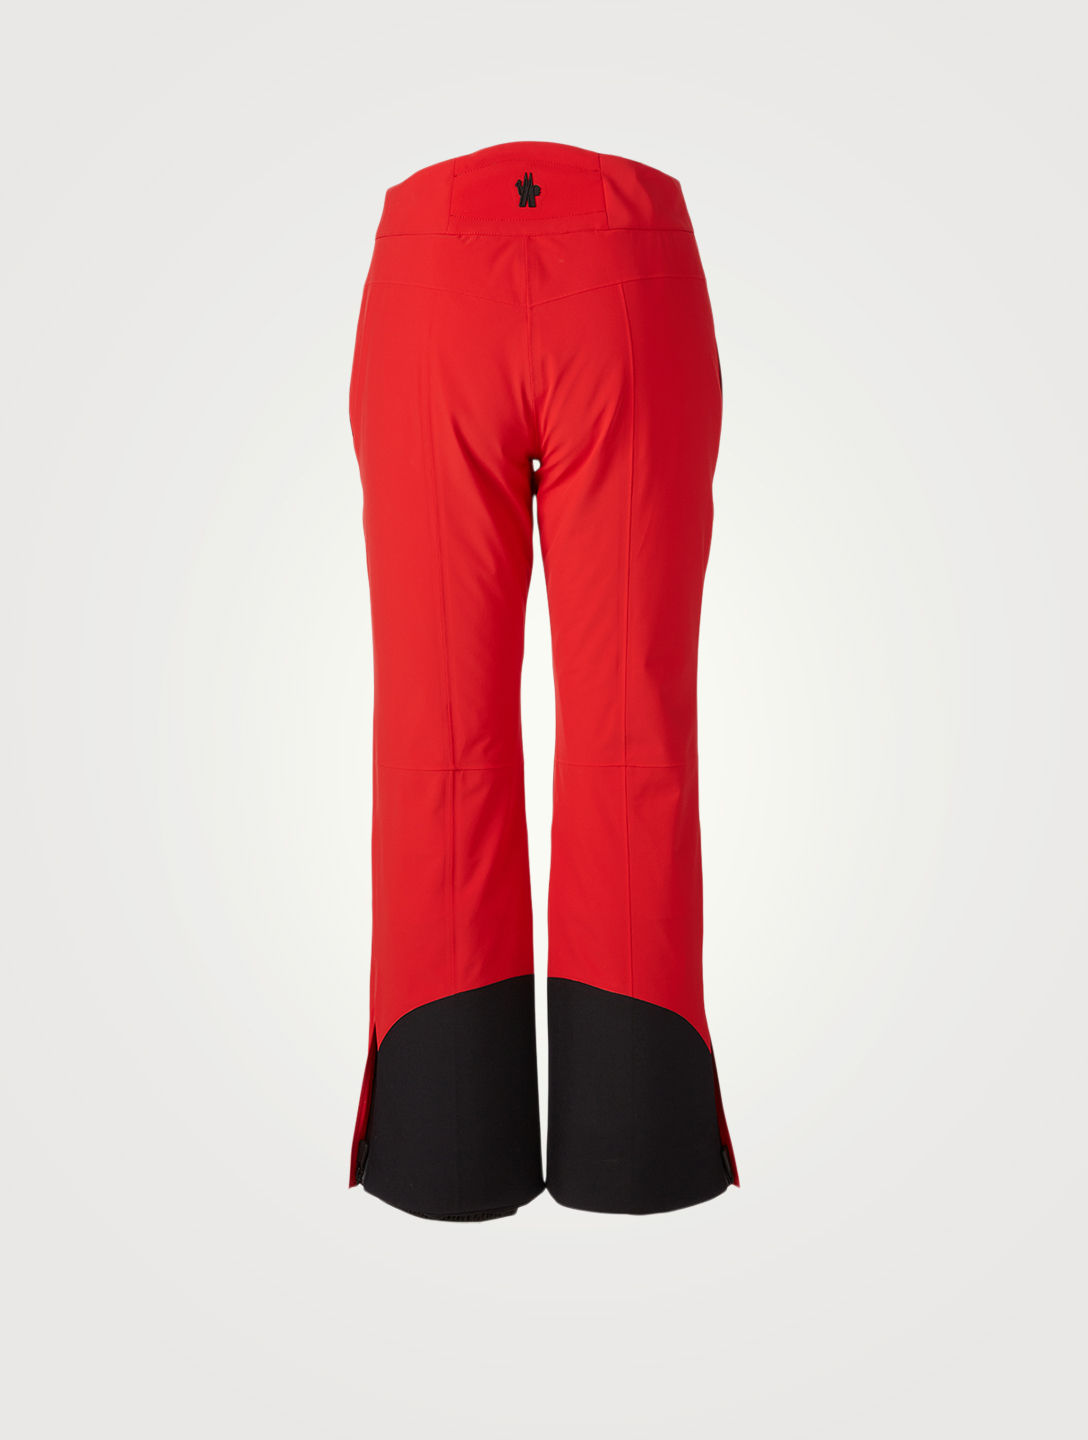 MONCLER GRENOBLE Flared Snow Pants Women's Red